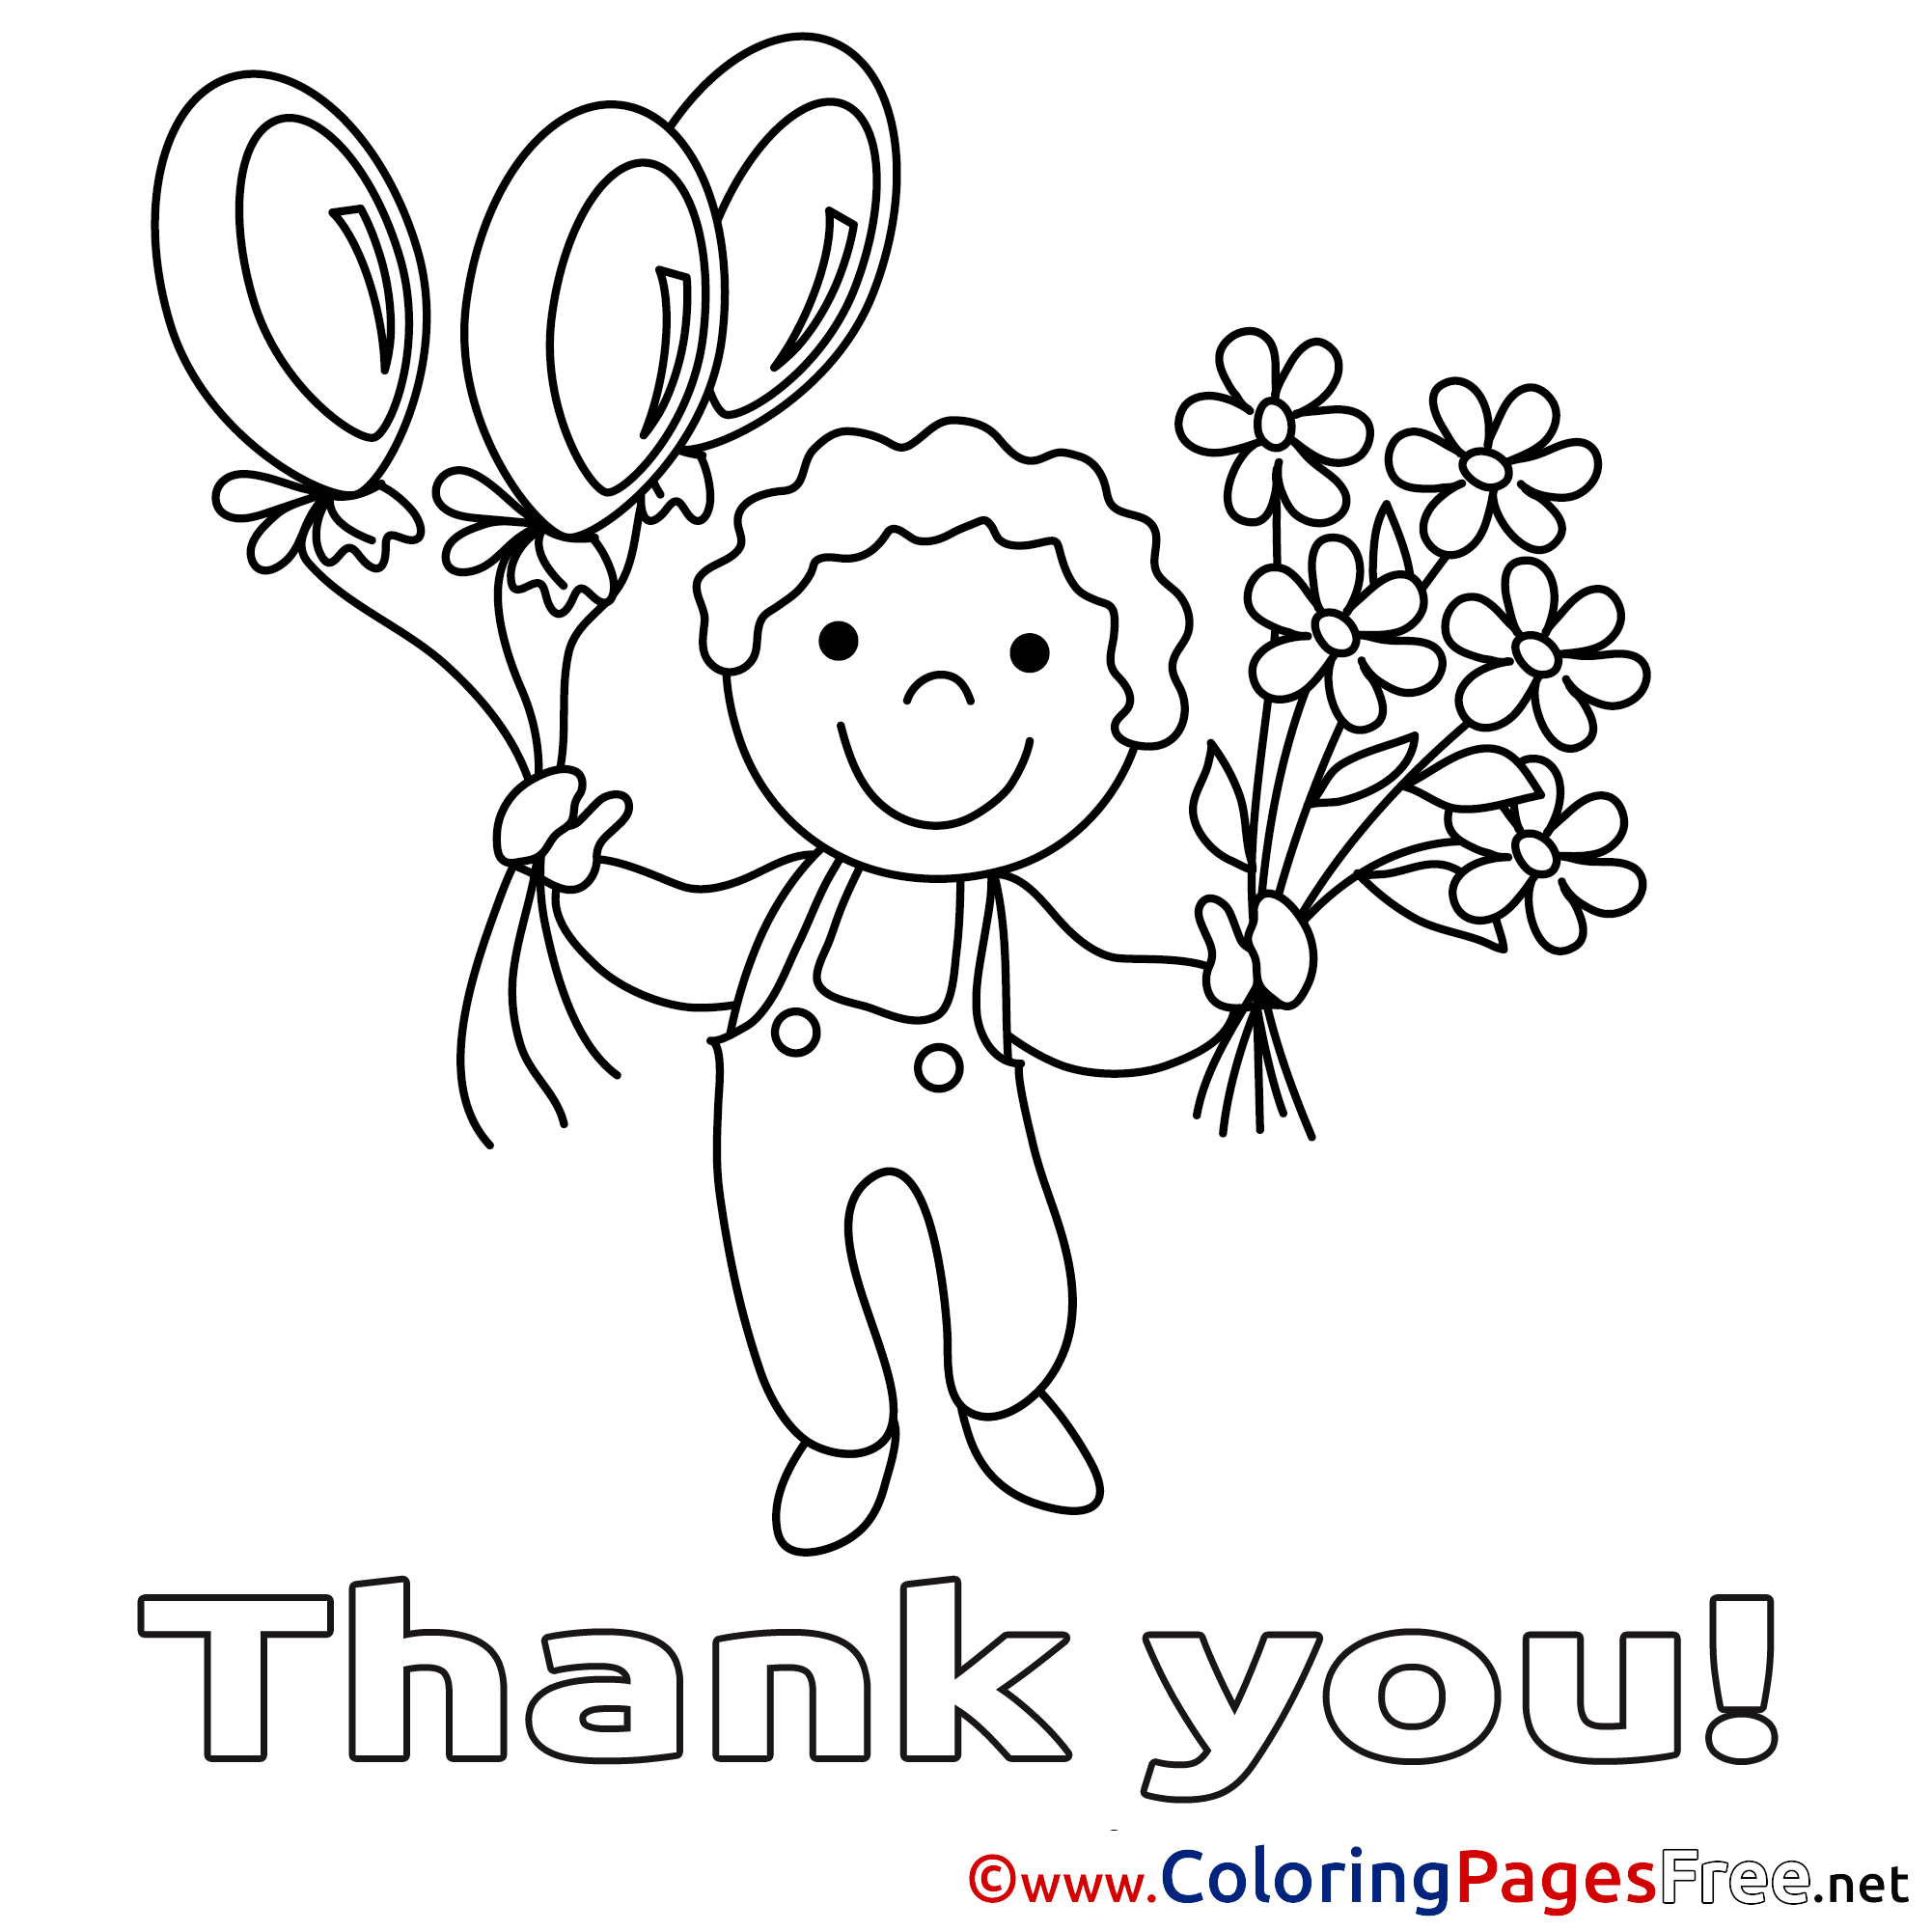 thank you coloring sheets thank you coloring pages coloring home coloring thank sheets you